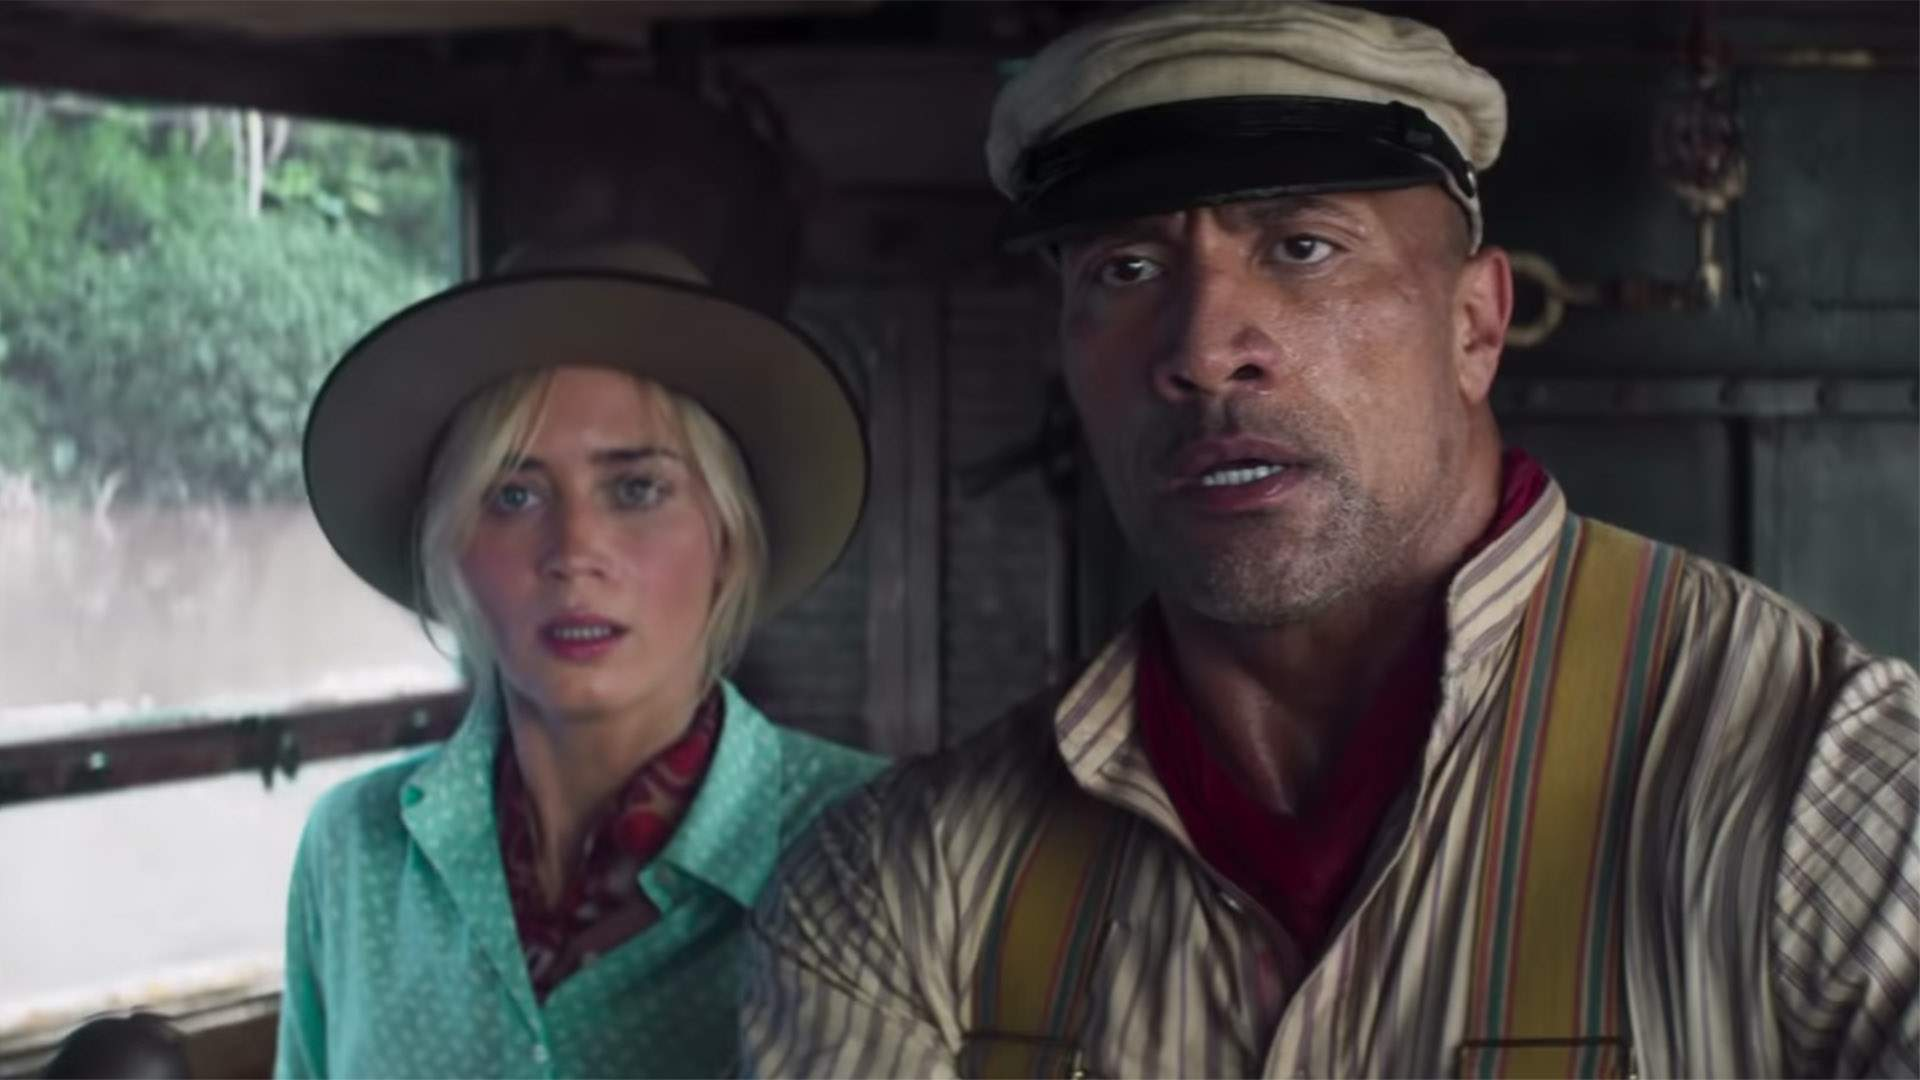 The First Trailer for 'Jungle Cruise' Takes Emily Blunt and Dwayne Johnson on a Wet and Wild Adventure